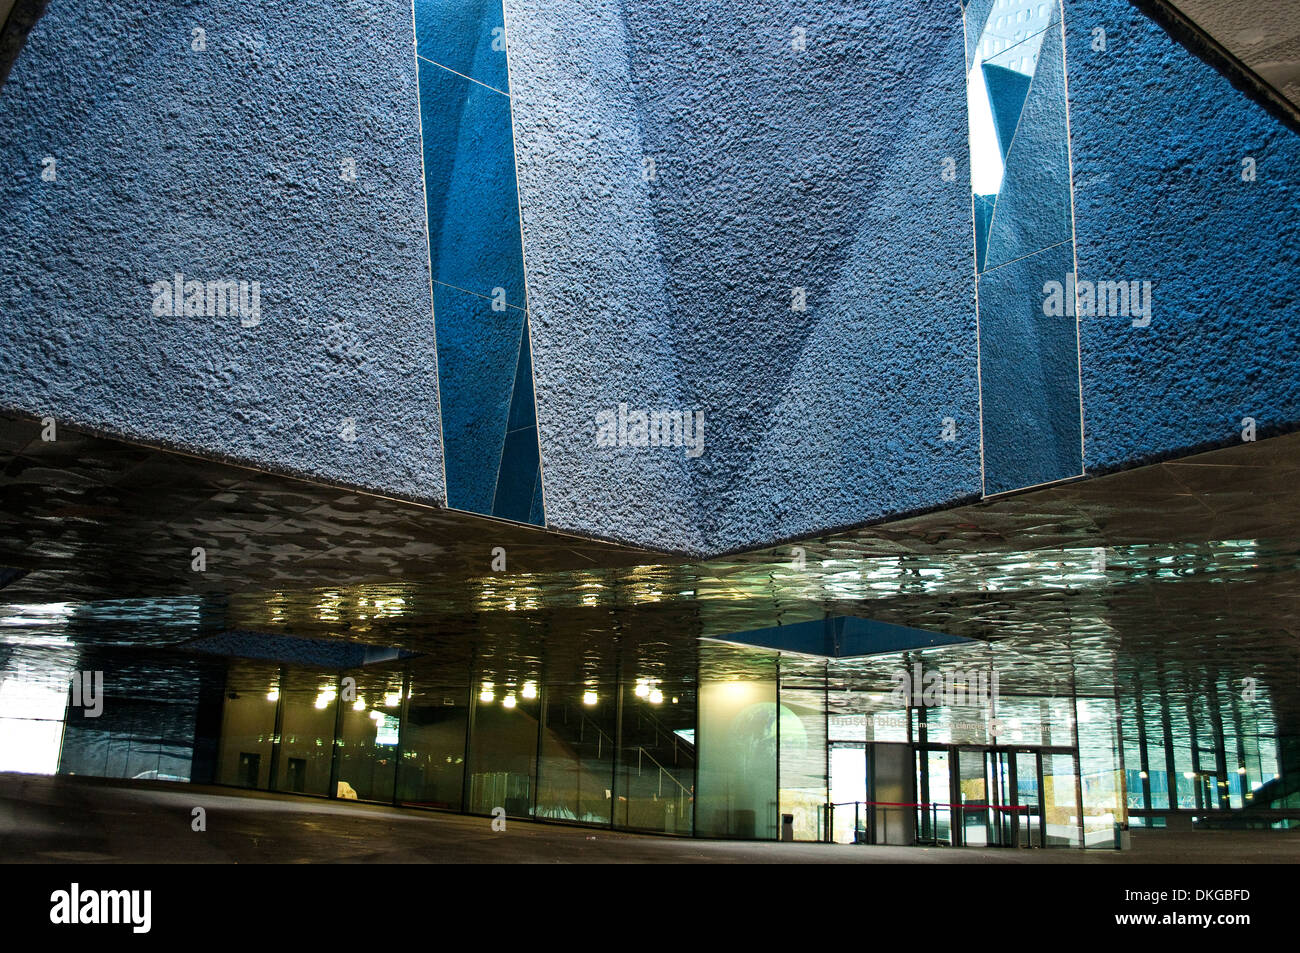 Entrance to Museu Blau - Blue Museum, Natural History and Science Museum, Barcelona, Catalonia, Spain - Stock Image